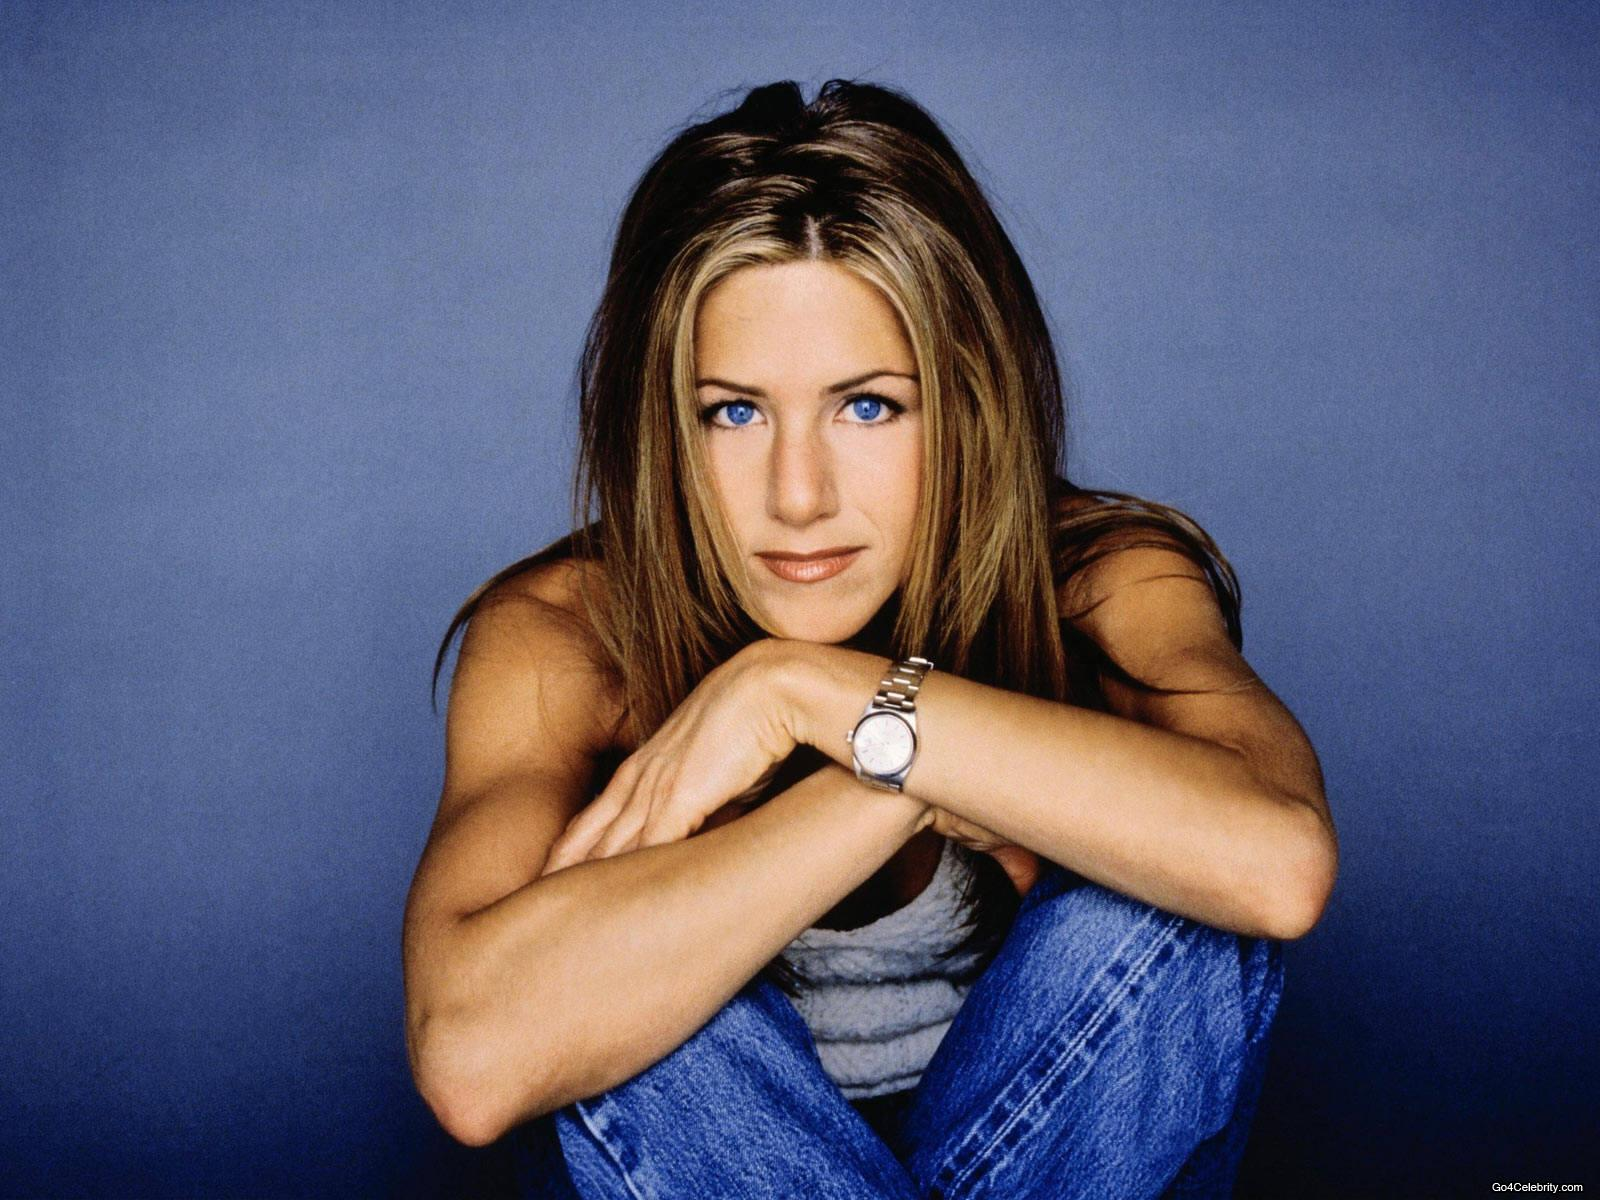 Aniston video images 12